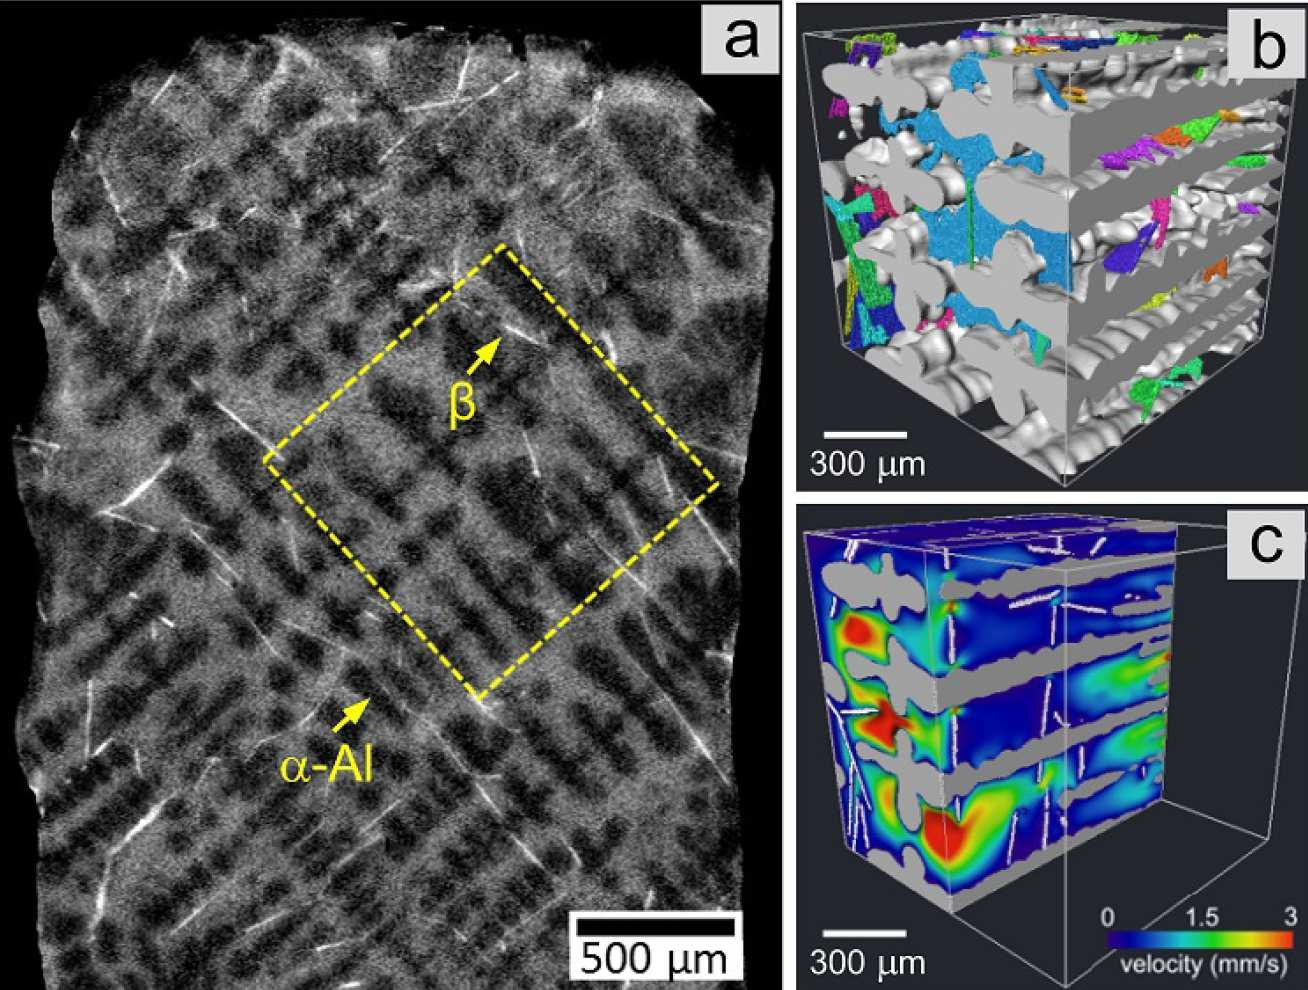 (a) Al-Si-Cu-Fe solidifying microstructure; (b) intermetallics (coloured) and dendrites (light grey) rendered in 3D from an ROI [yellow square in (a)]; (c) CFD simulated velocity field showing how intermetallics block liquid flow.